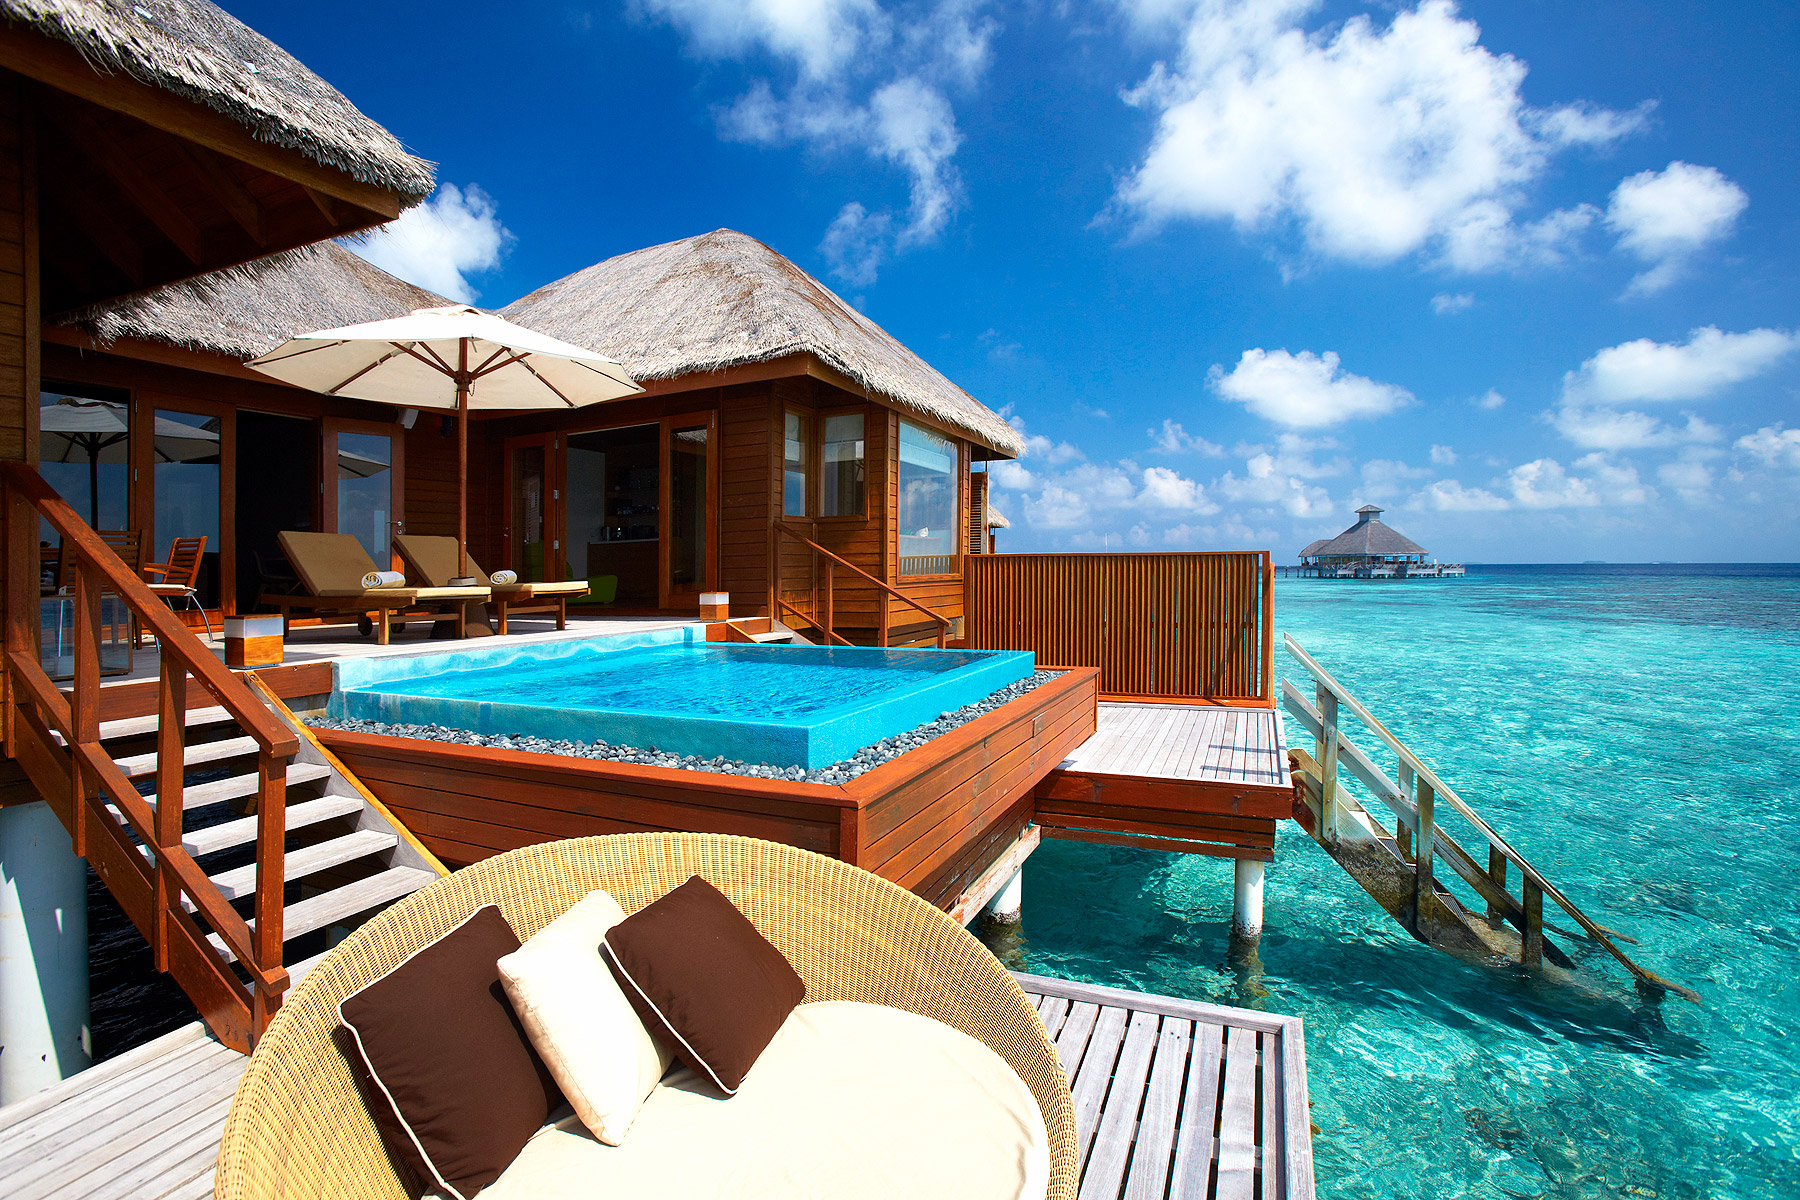 A Dream Destination: Floating On Heaven At Huvafen Fushi